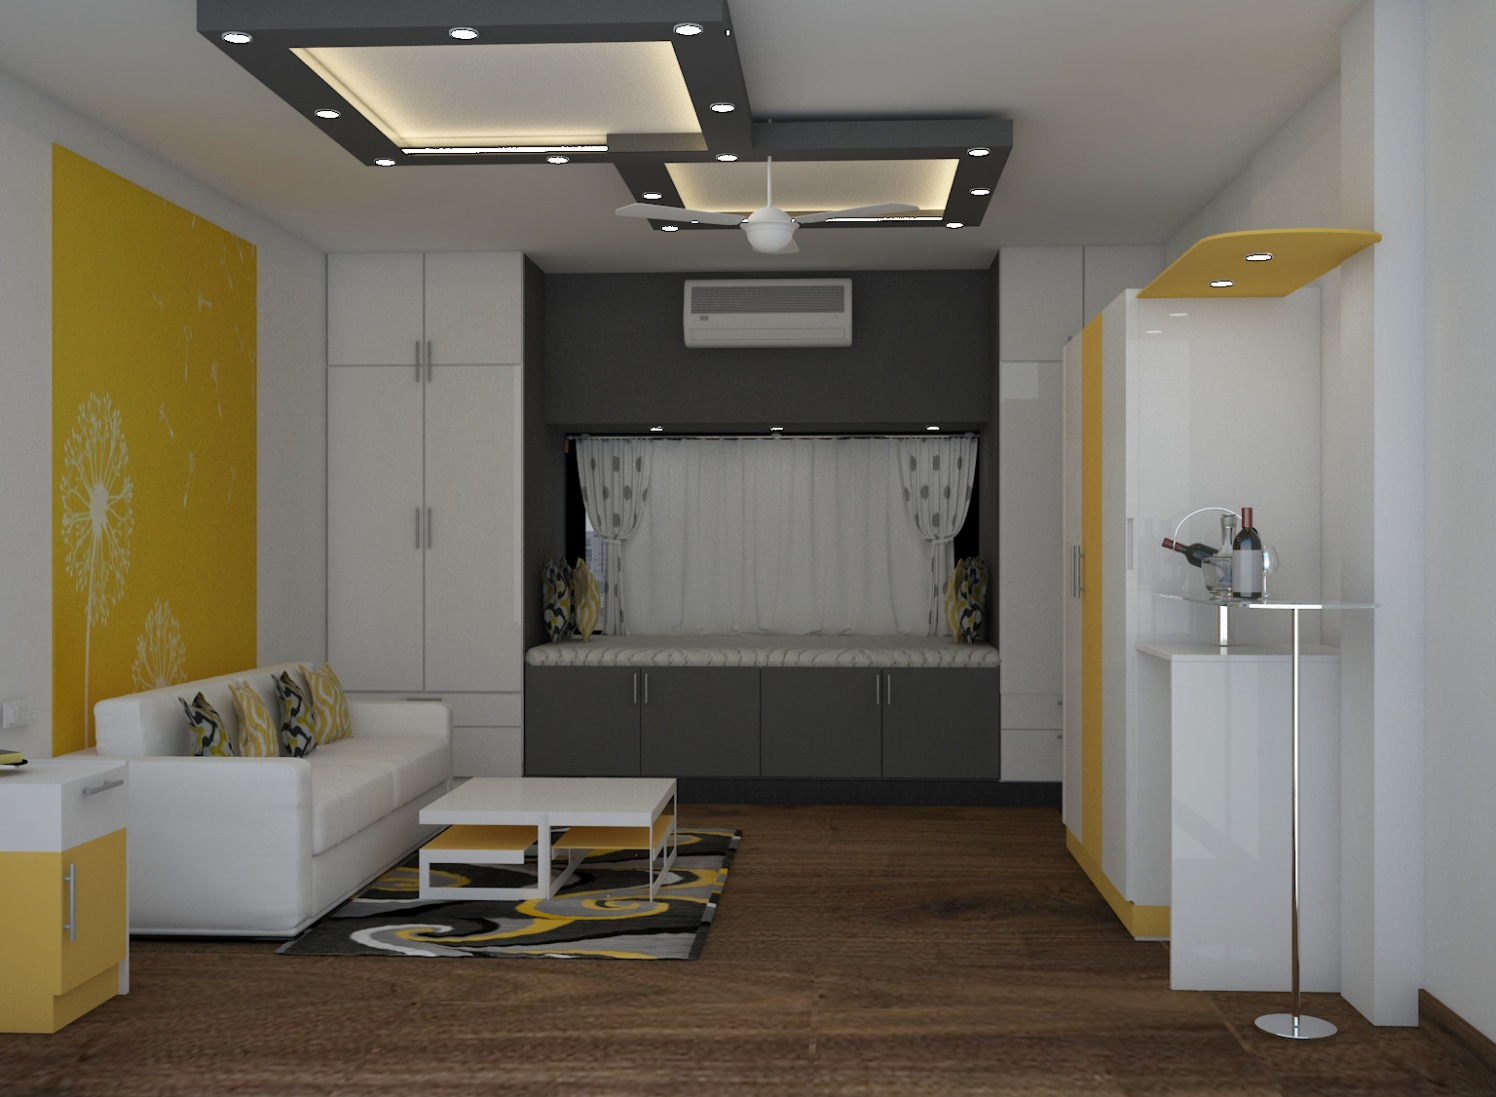 Yellow Shade Walls And Wooden Work In Living Room by Megha Jain Living-room Modern | Interior Design Photos & Ideas